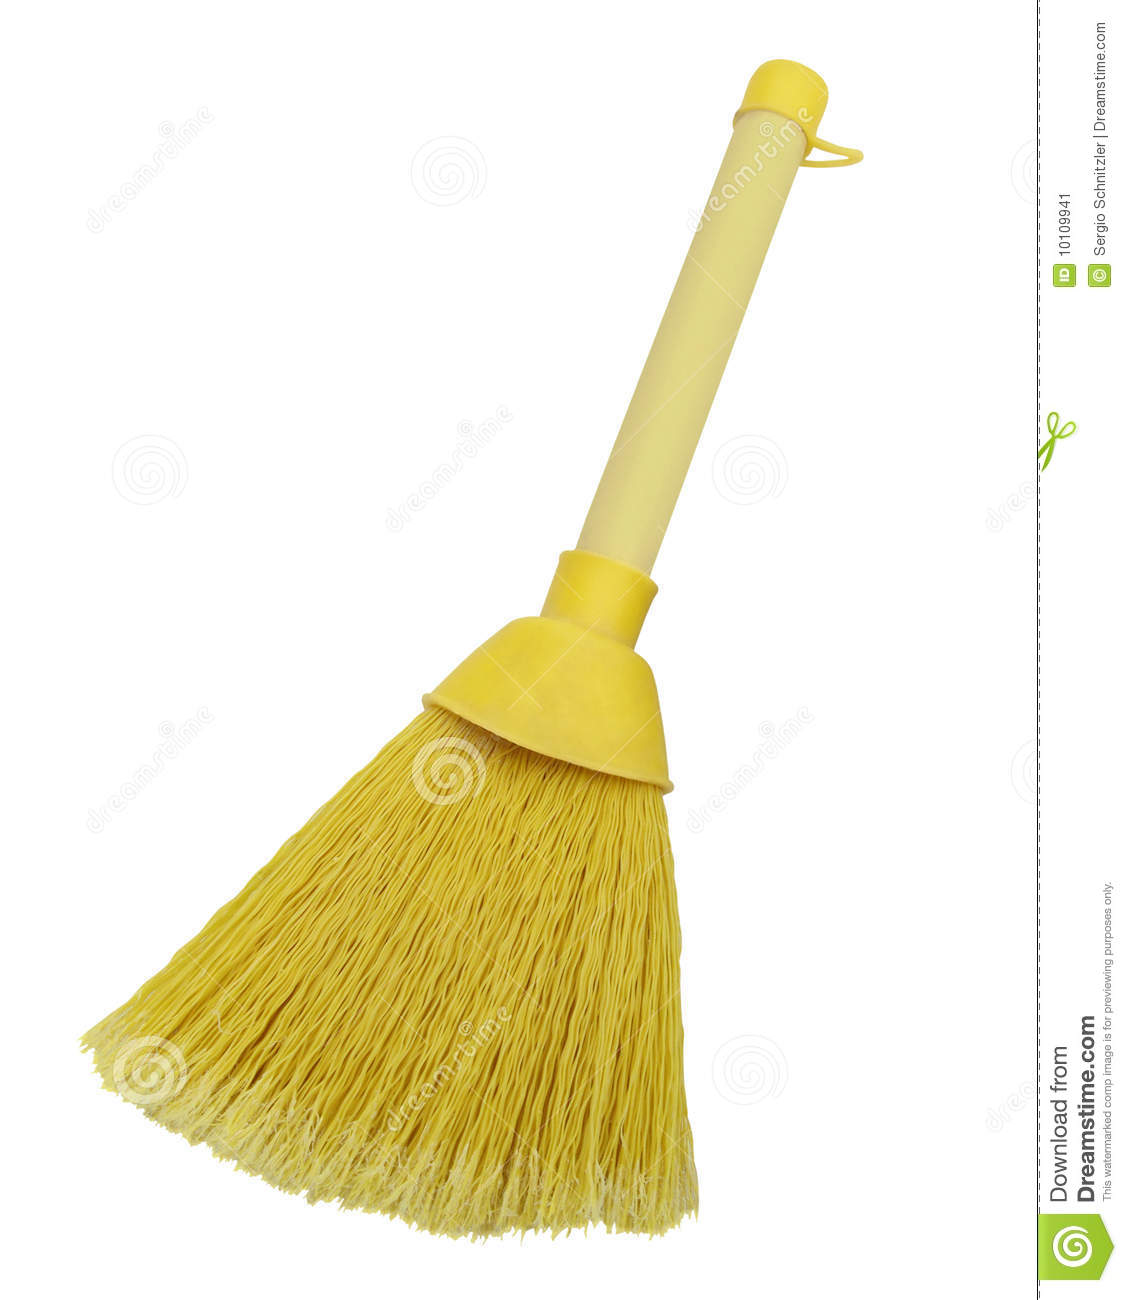 broom stock image image of isolated  implements  synthetic 10109941 hair brush clipart brush clipart png